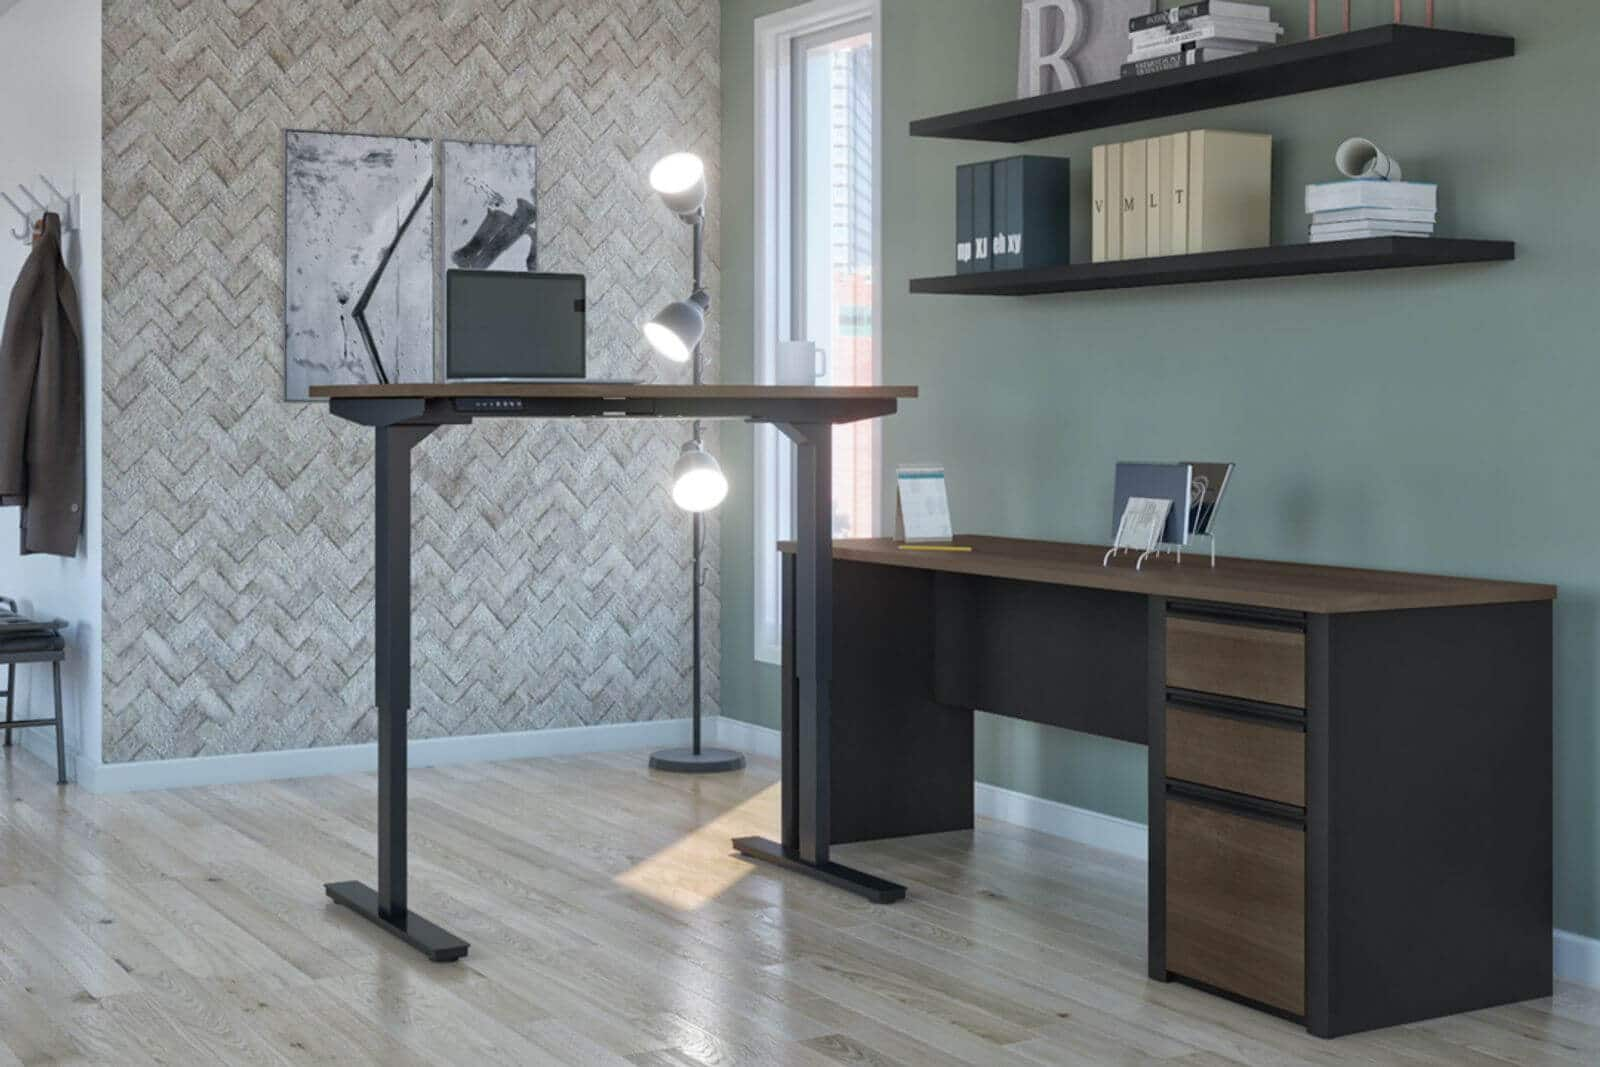 Working from Home? Here Are 5 Reasons to Choose a Standing Desk for Your Home Office